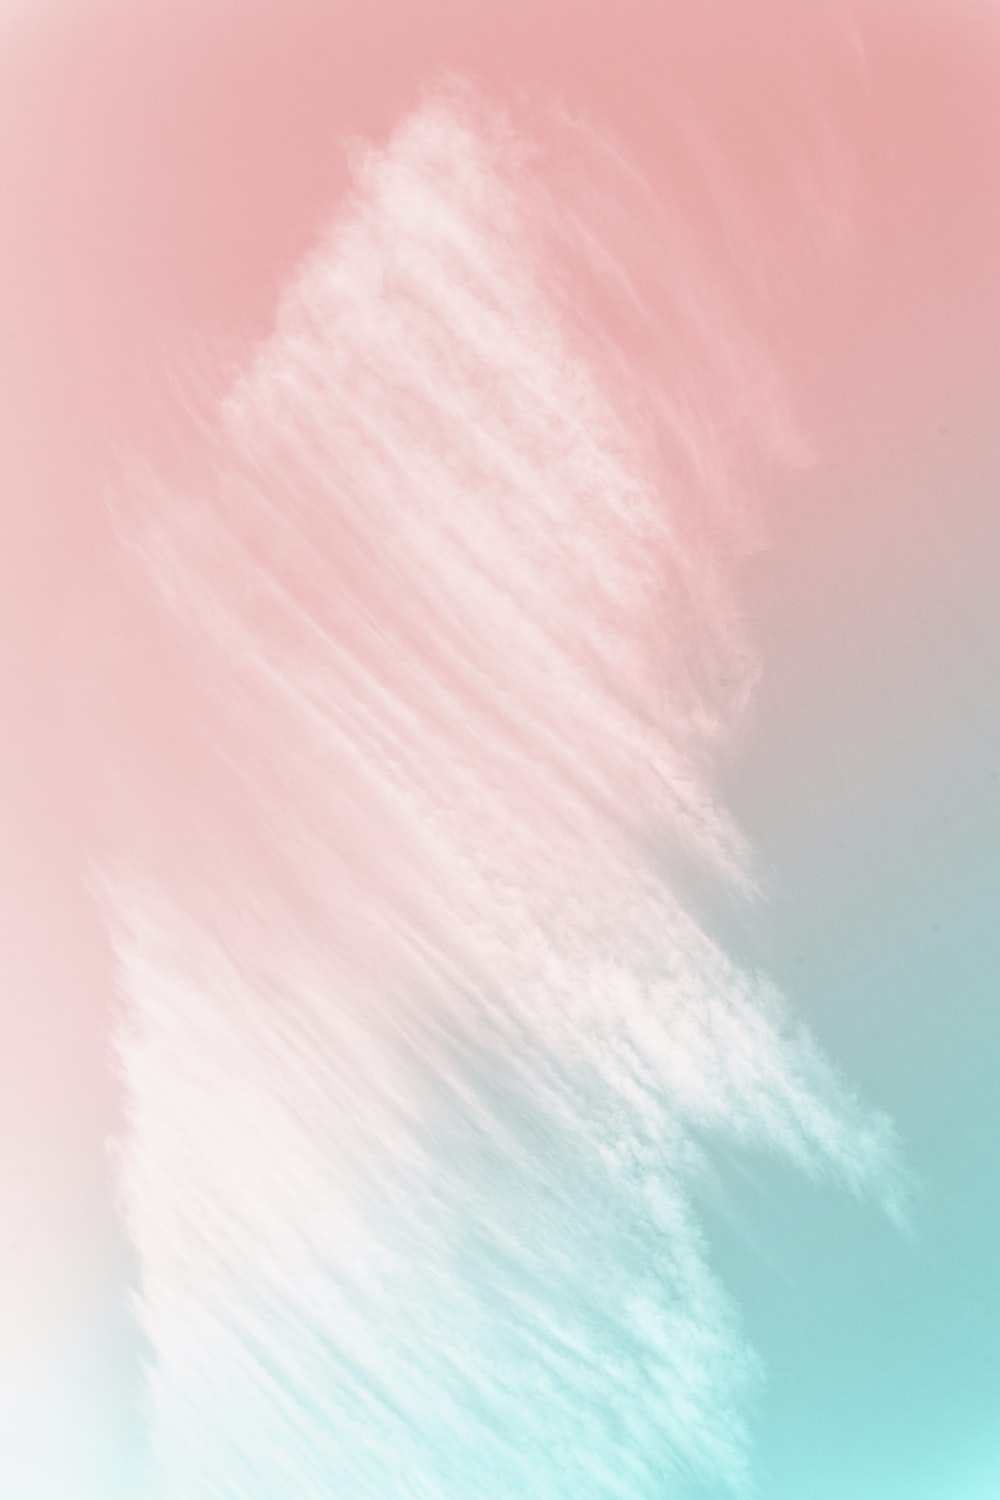 Pastel Wallpapers Free HD Download [500 HQ]